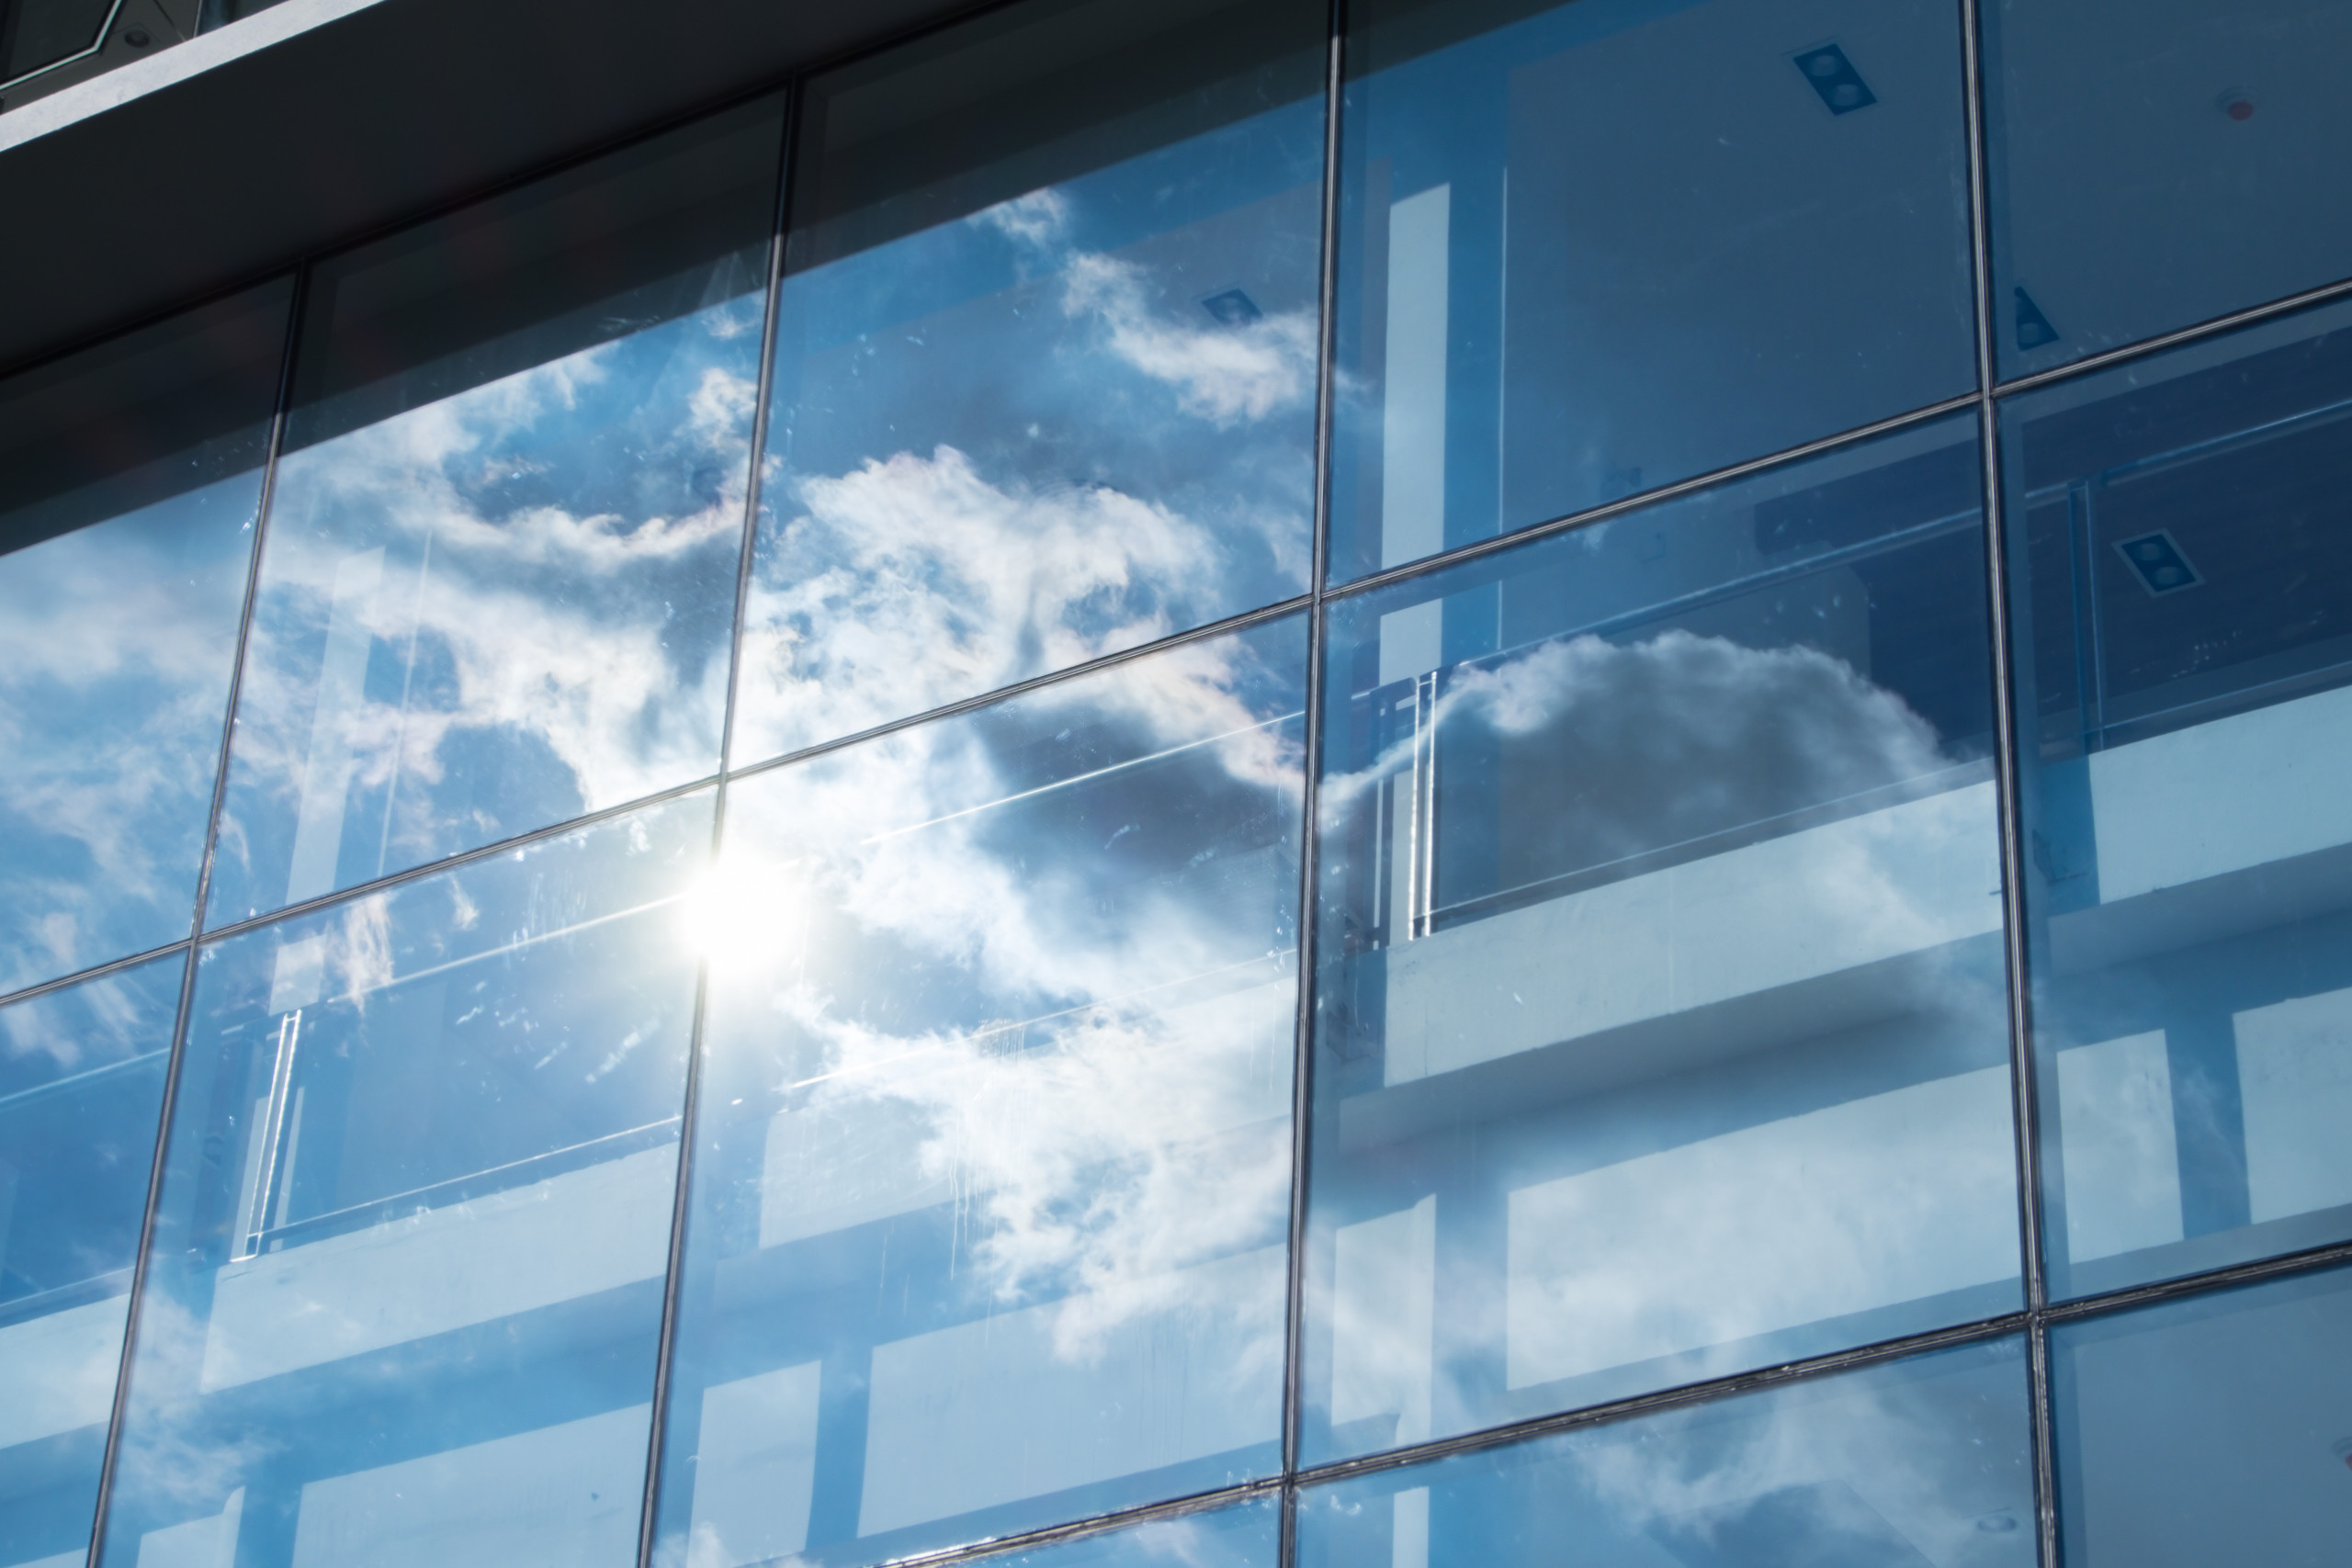 Cloud reflection on glass